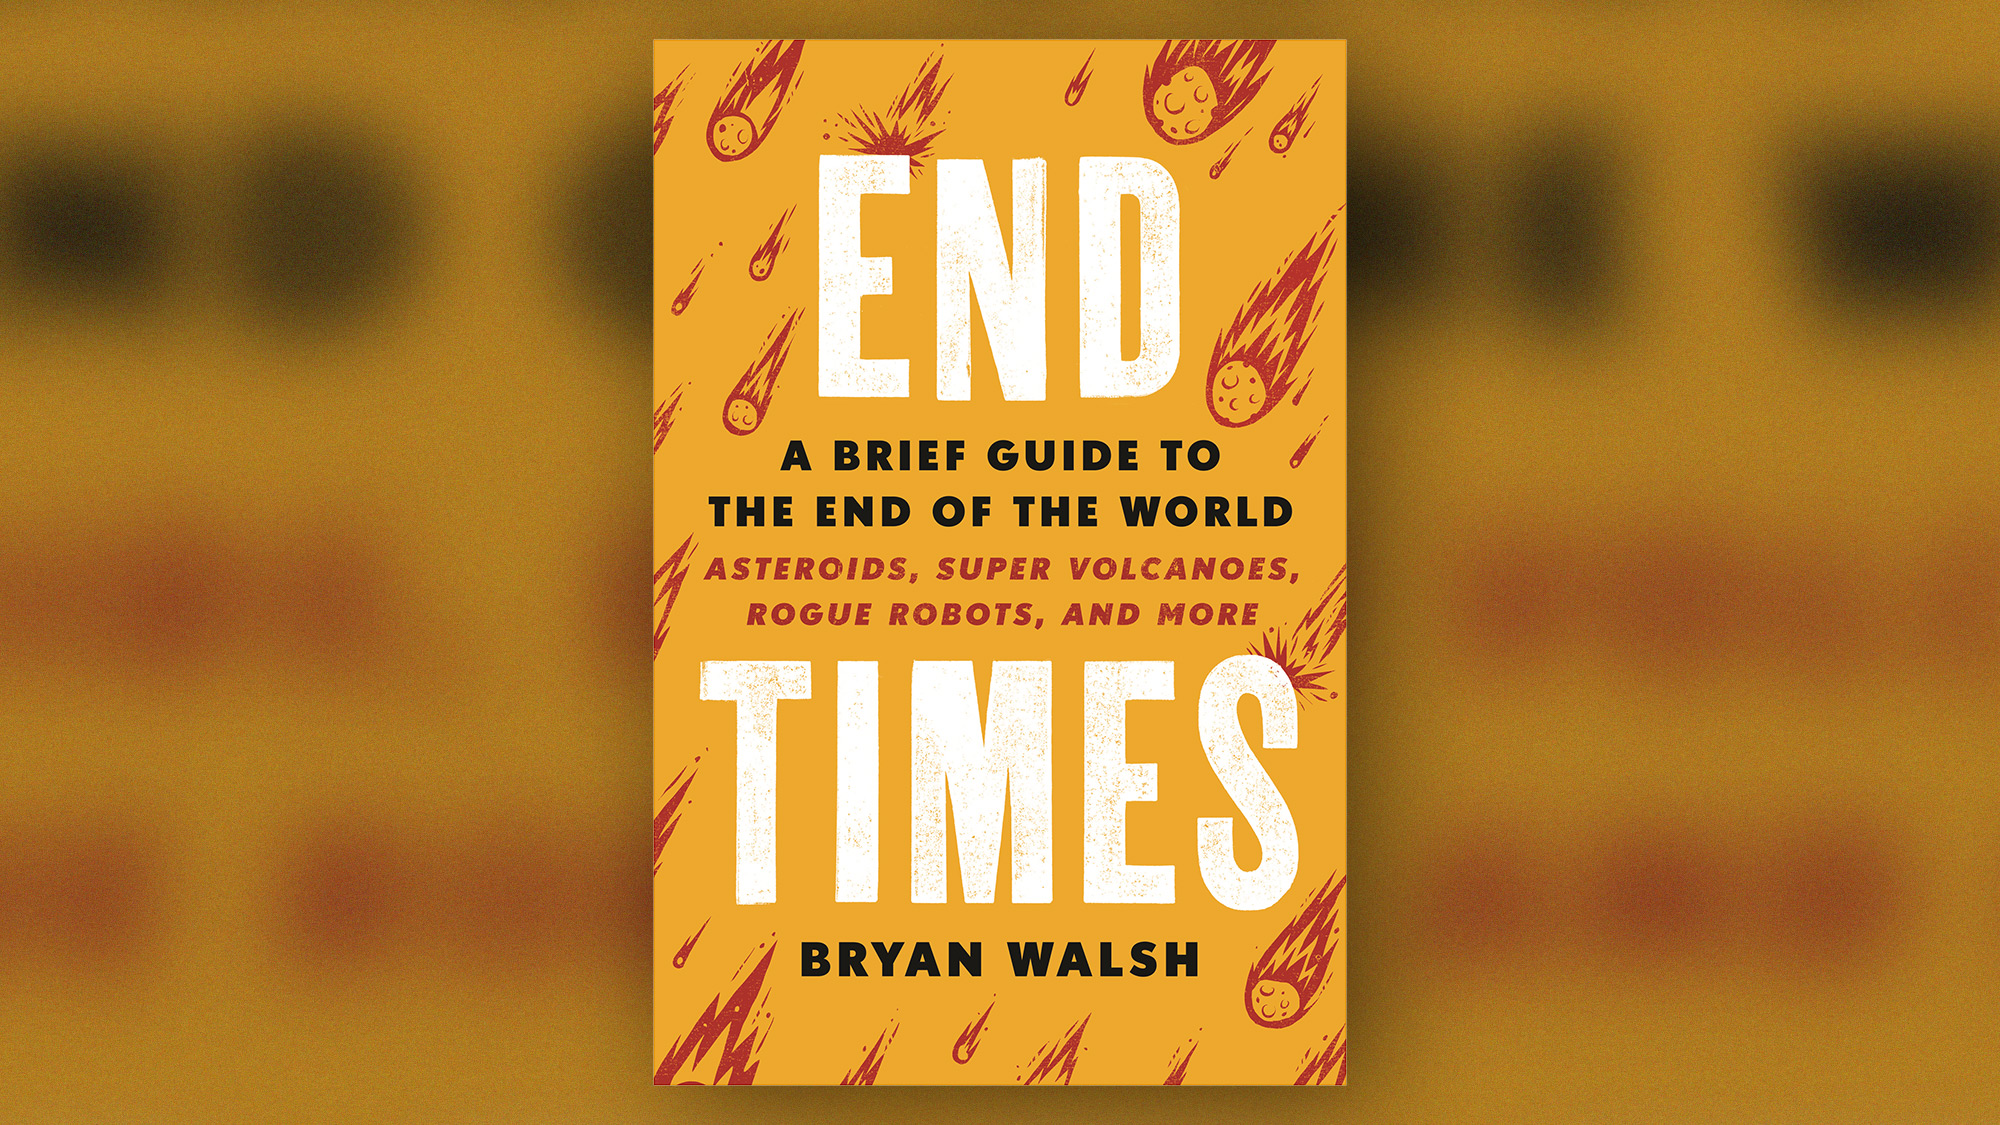 Book Excerpt: Can We Escape the End of the World by Going